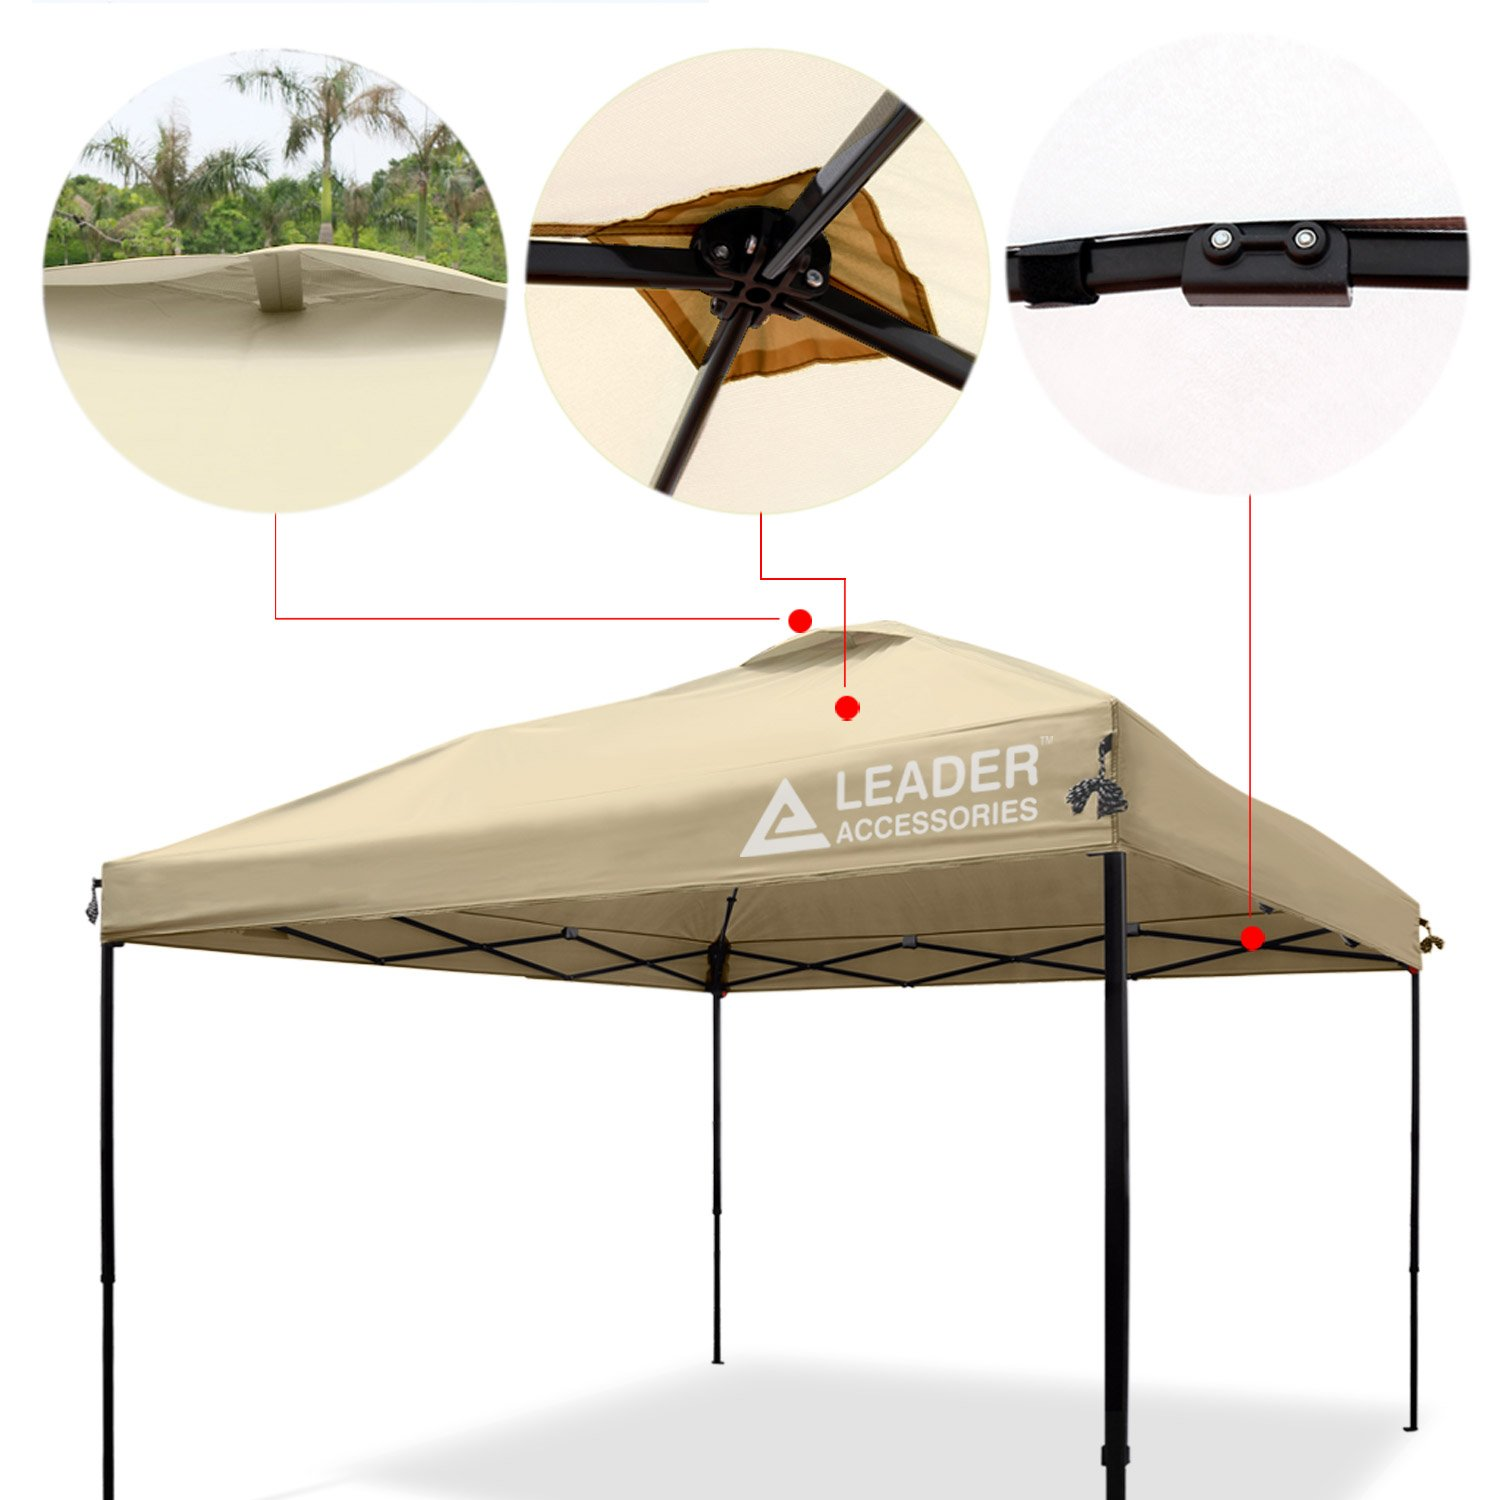 low priced 67c25 6c093 Leader Accessories Pop Up Canopy Tent 10'x10' Canopy Instant Canopy Shelter  Straight Leg Including Wheeled Carry Bag, Beige